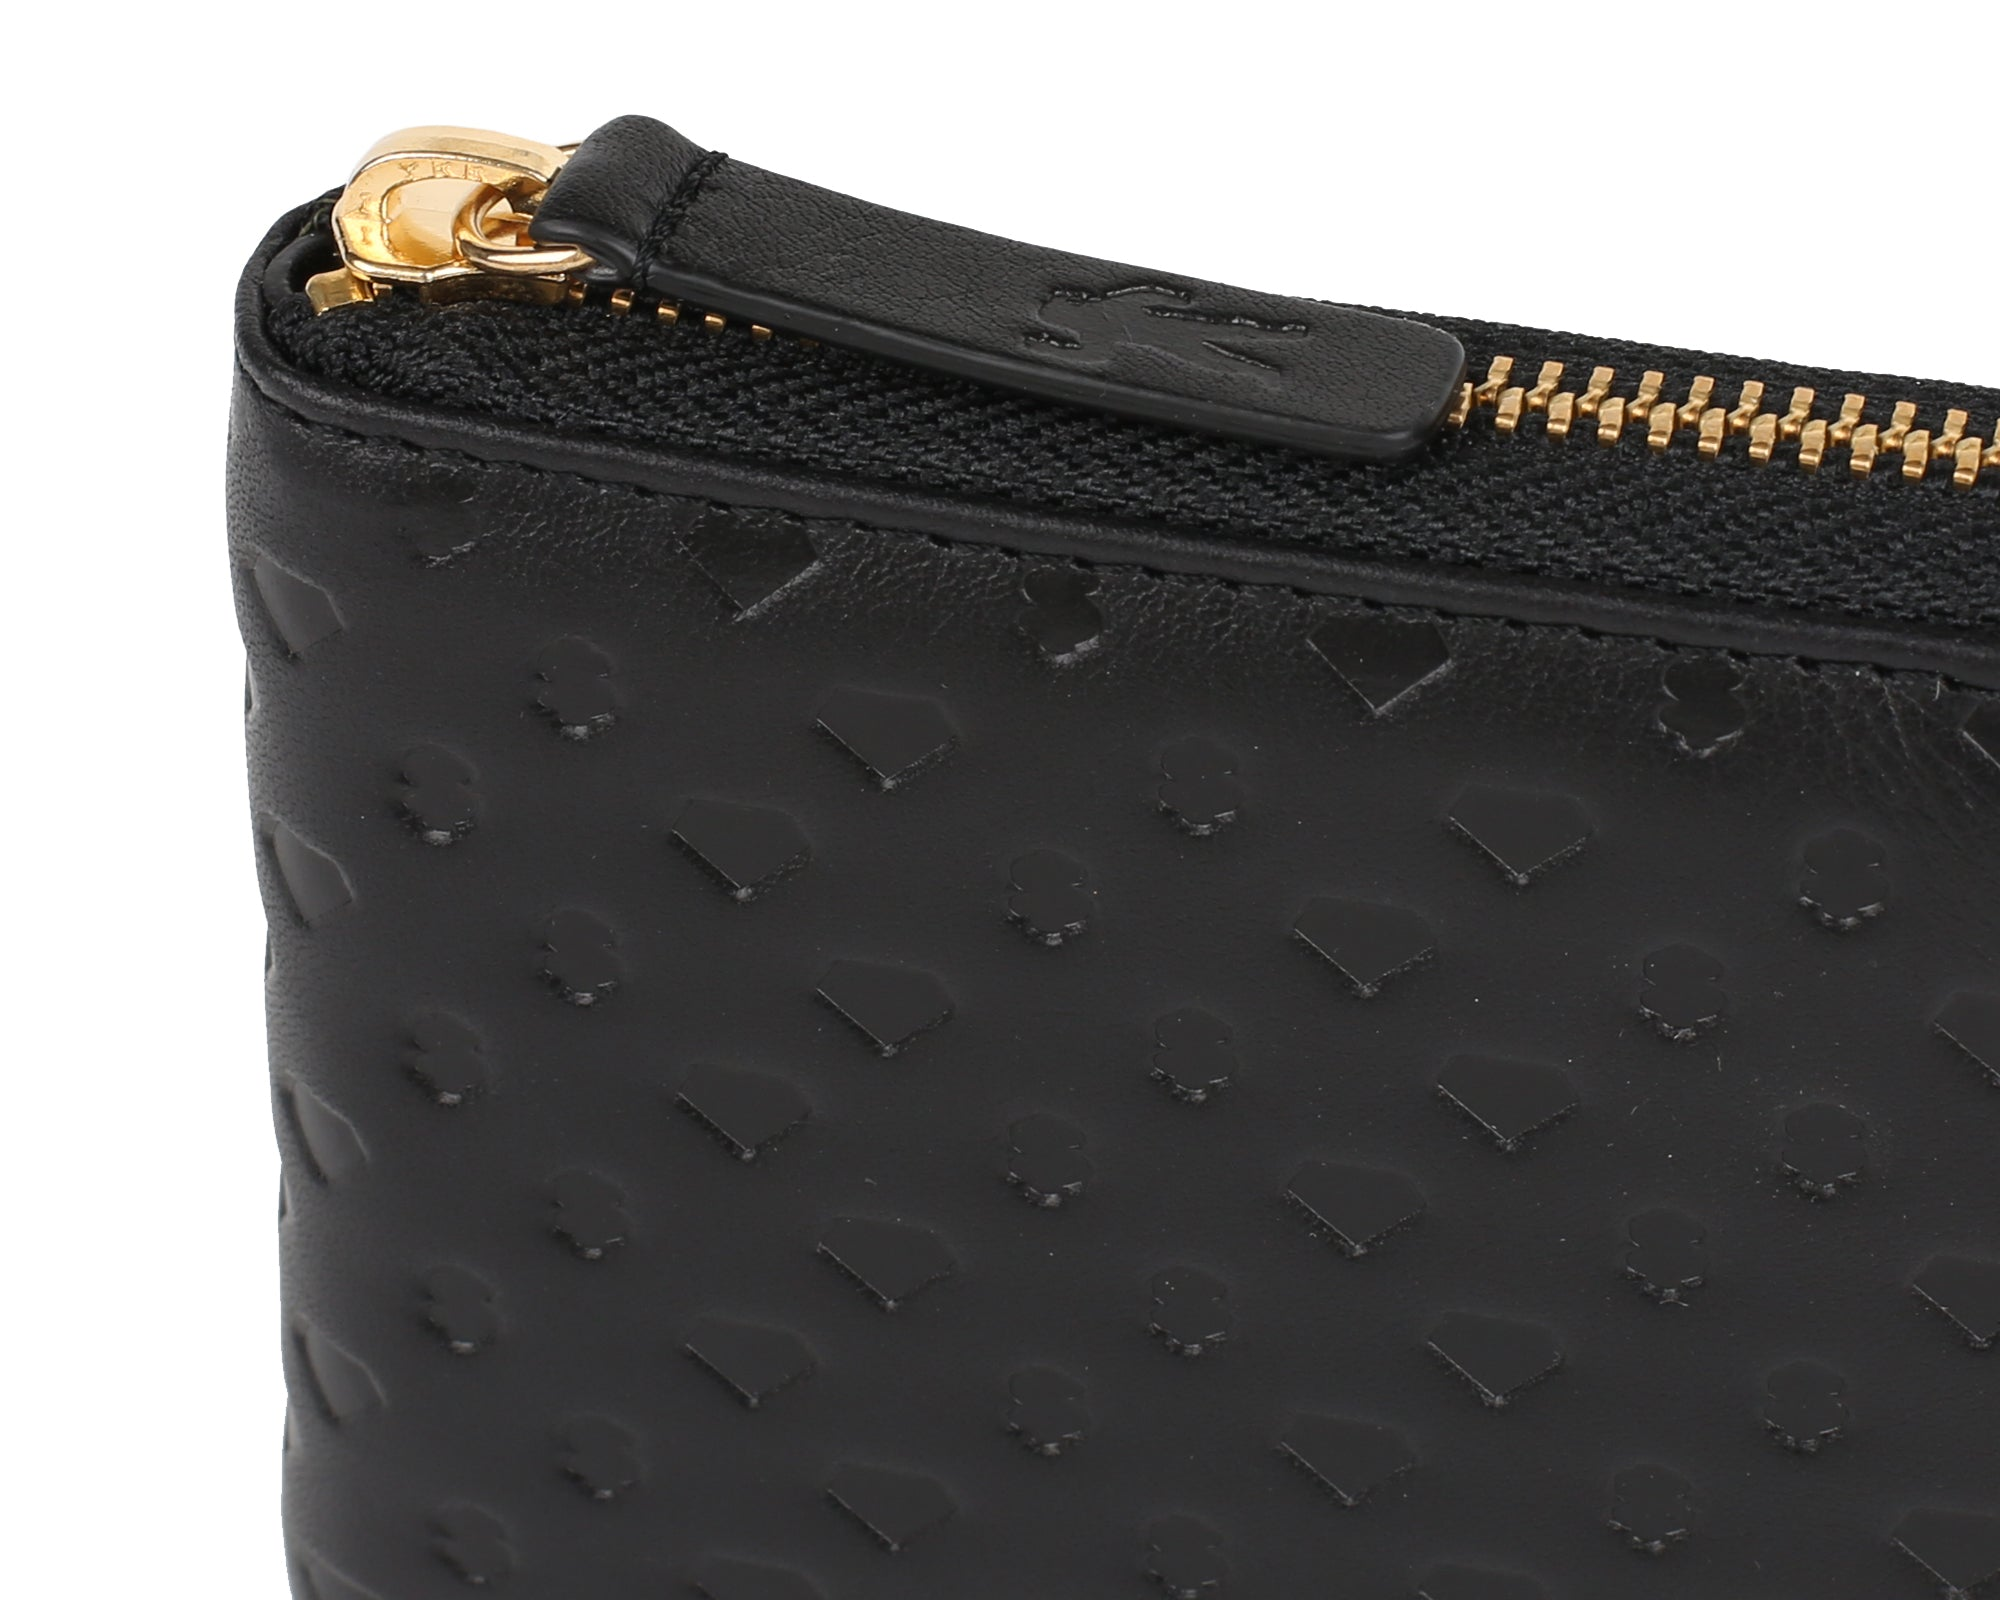 DIAMONDS & DOLLARS LEATHER WALLET - BLACK